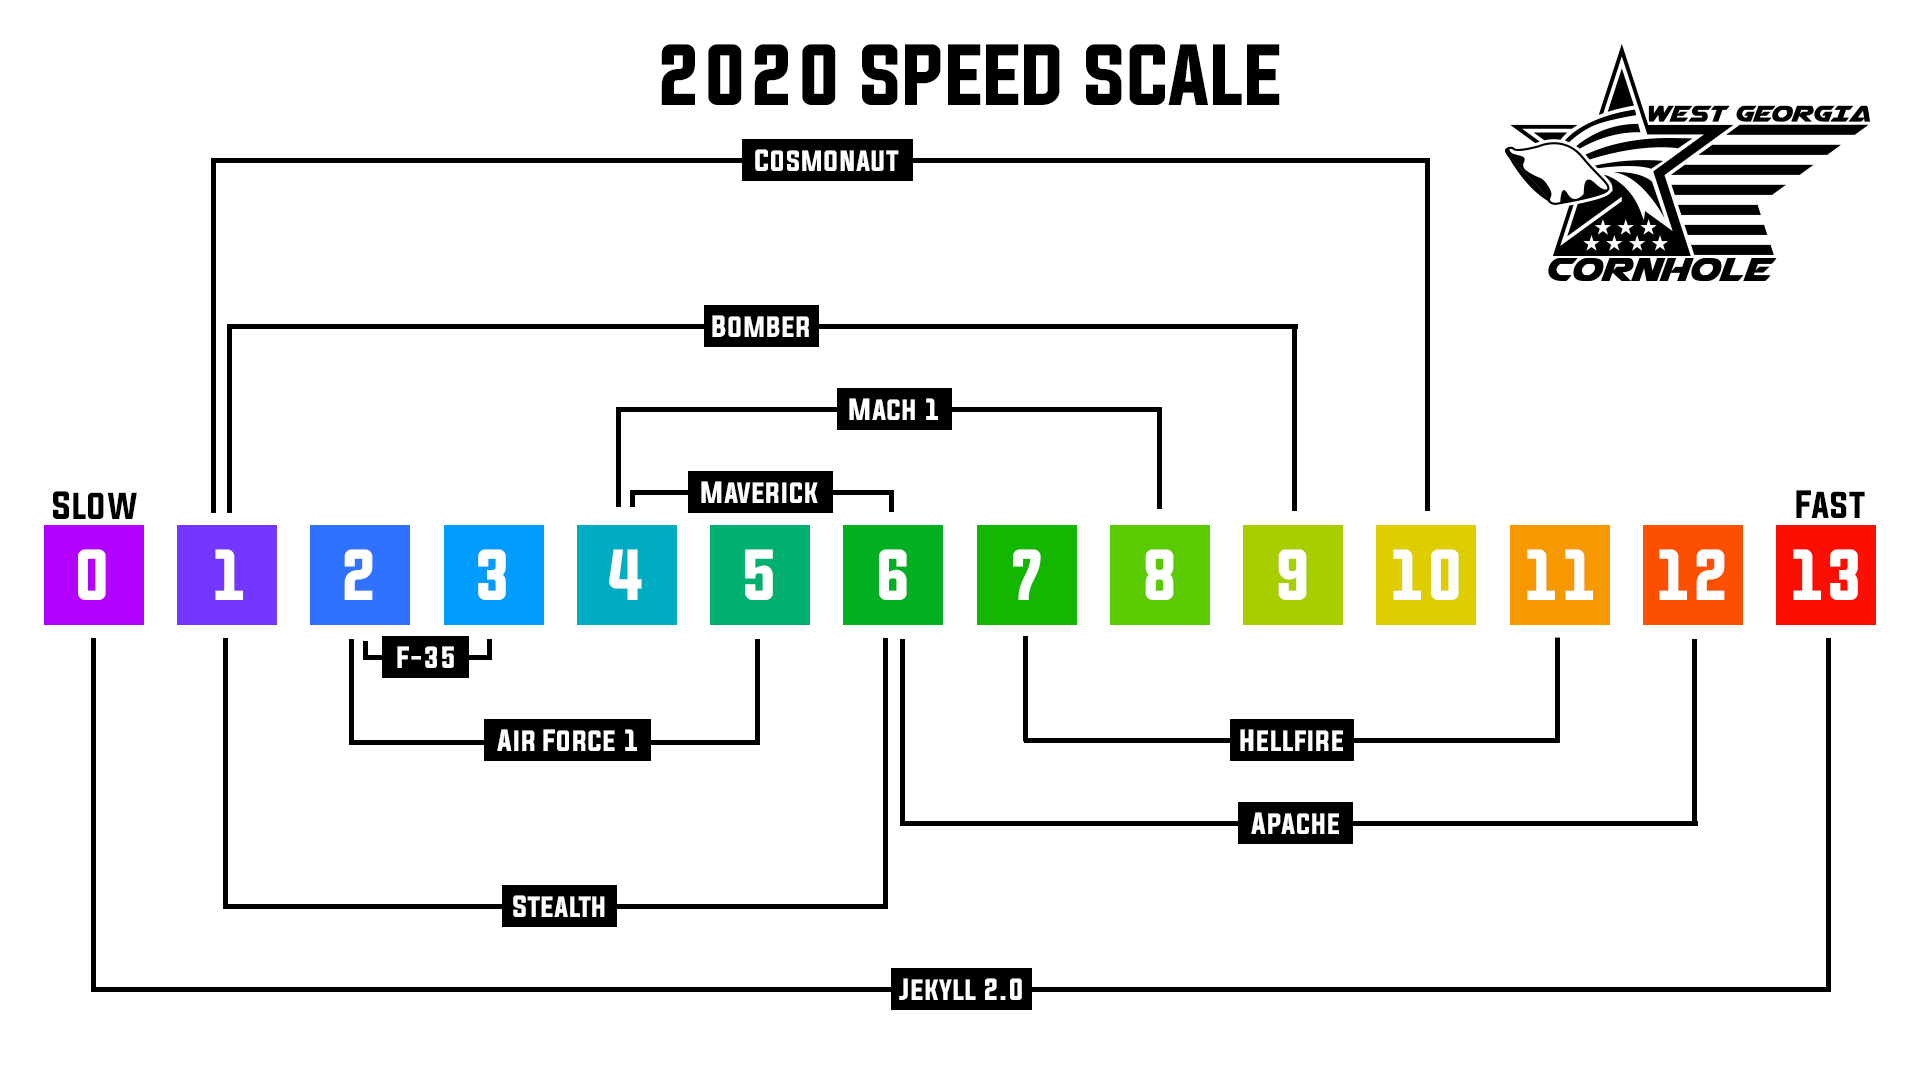 2020-speed-scale.png